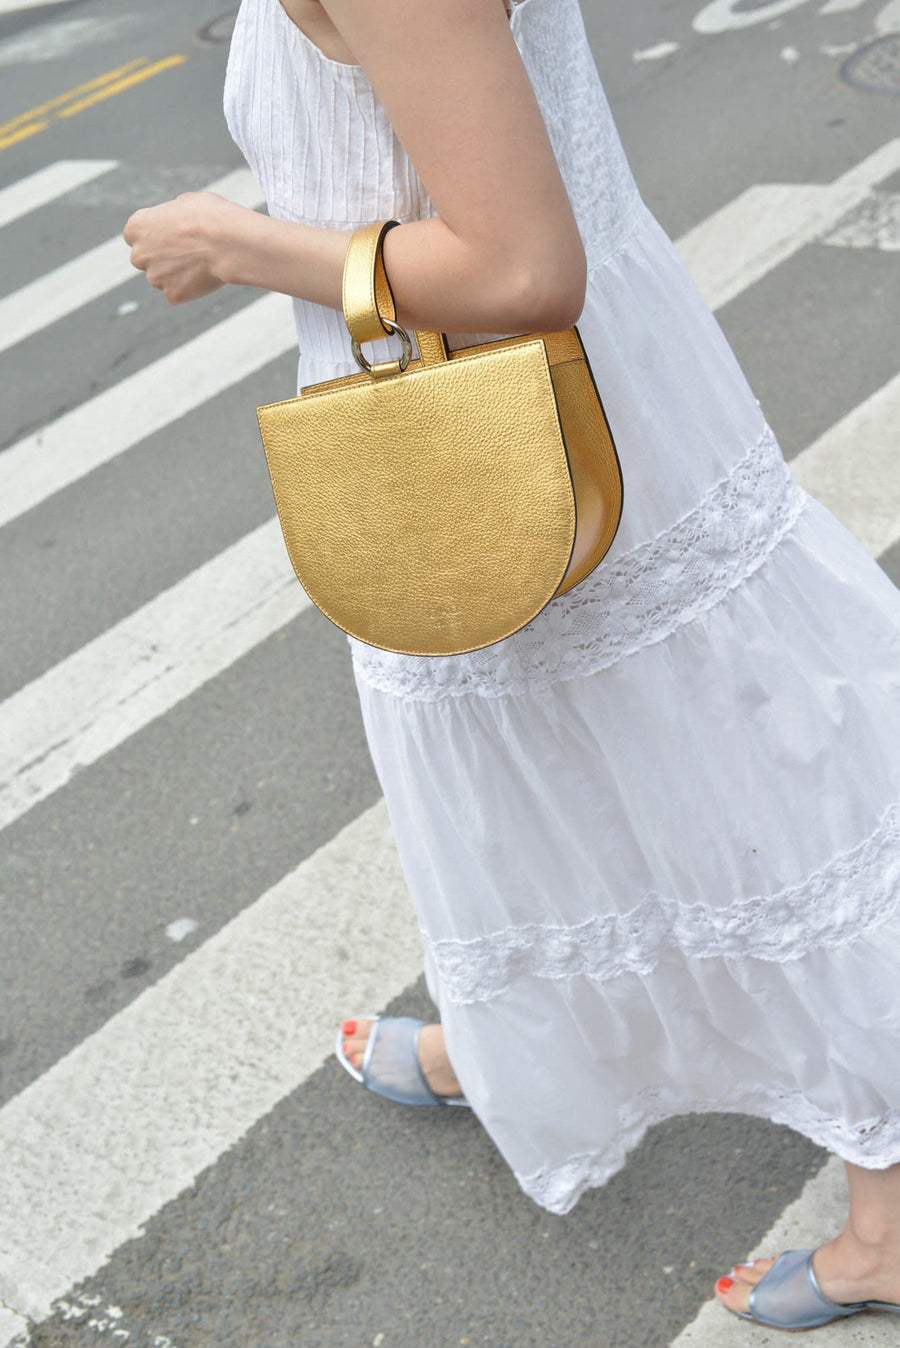 Dome Wristlet - Honey Gold - OAD NEW YORK